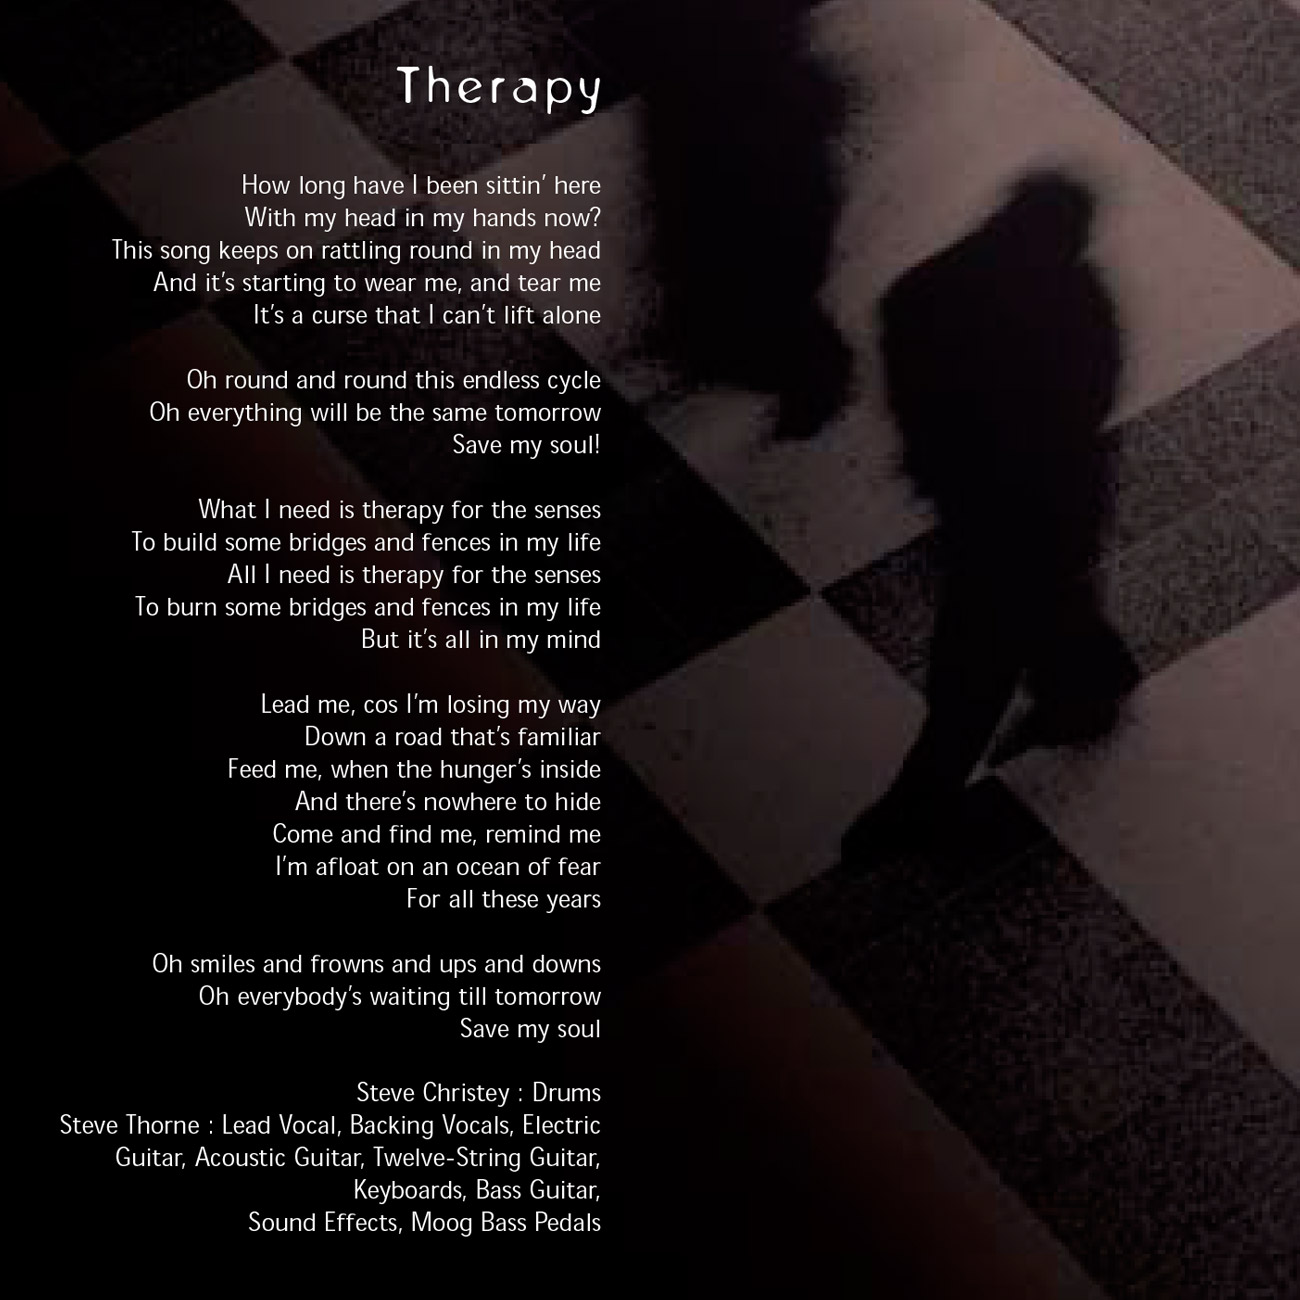 07 - Therapy